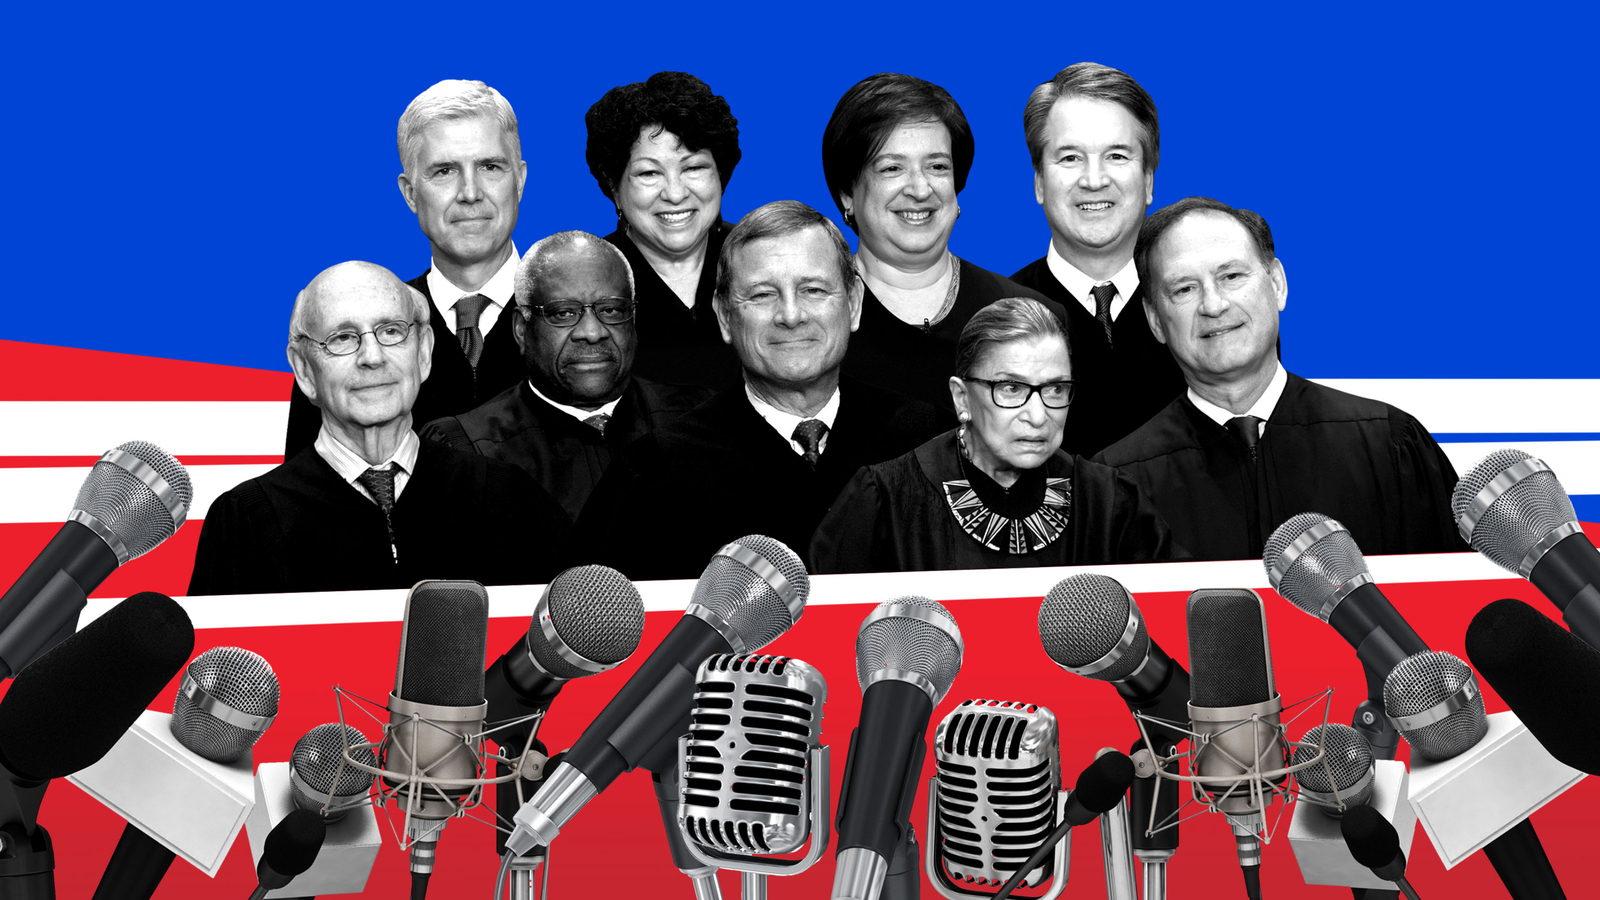 Here are the 3 Supreme Court cases the justices have yet to rule on